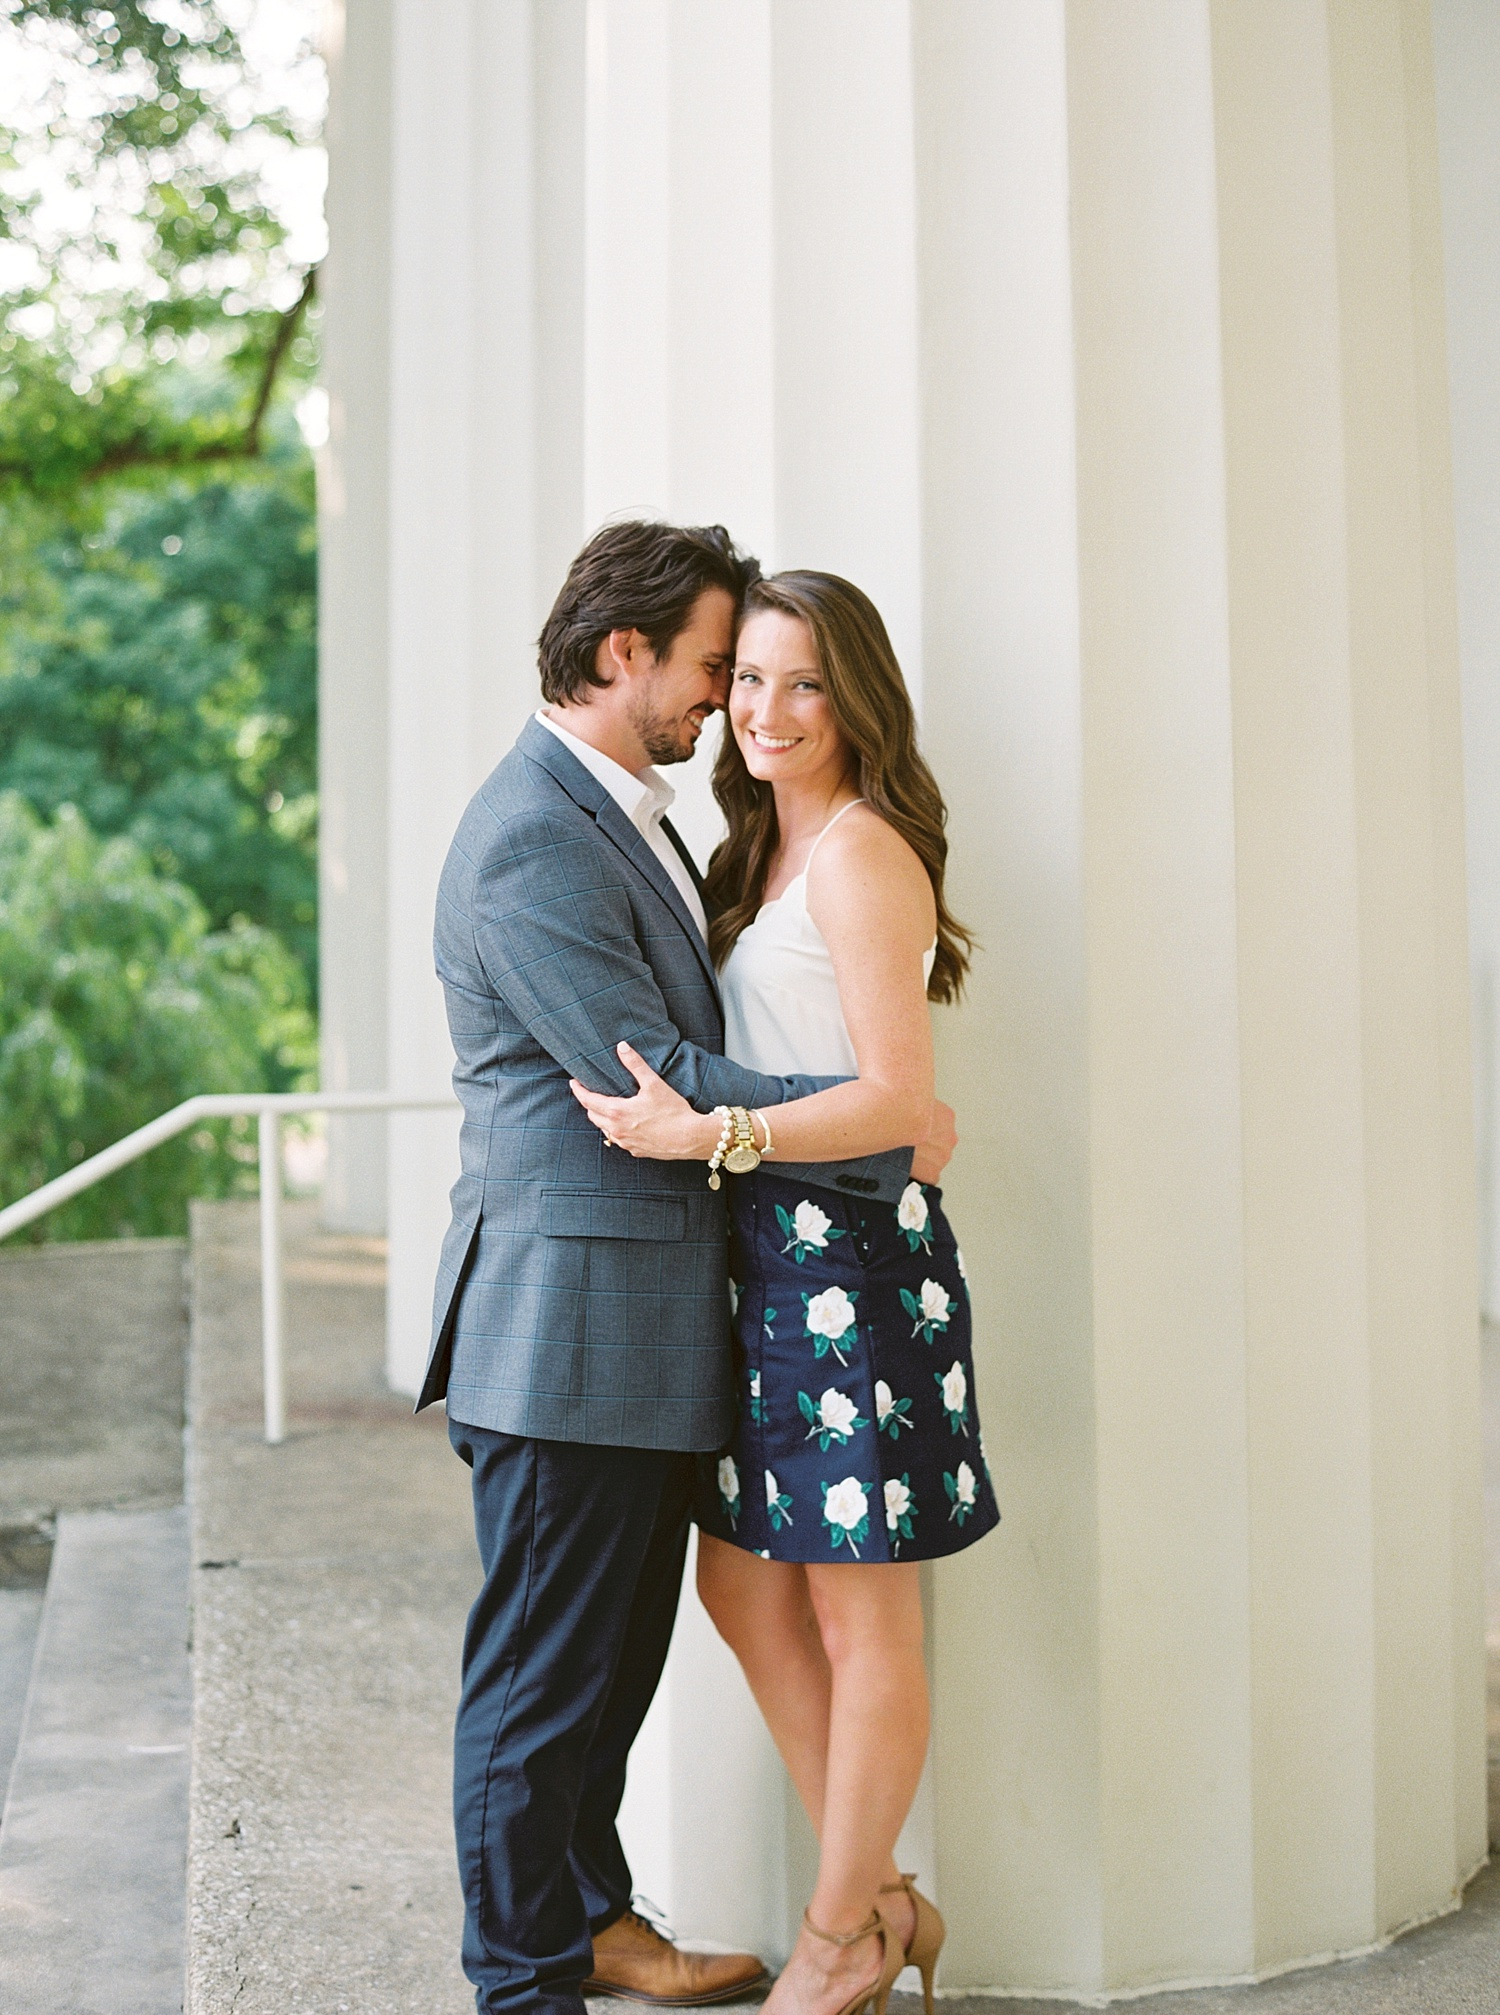 Downtown Lexington Engagement Session Talon Winery Picnic Engagement Session Gal Meets Glam Anthropologie Dress Laura Bodnar Photography Lexington Wedding Photographer Film Photography_0009-1.jpg